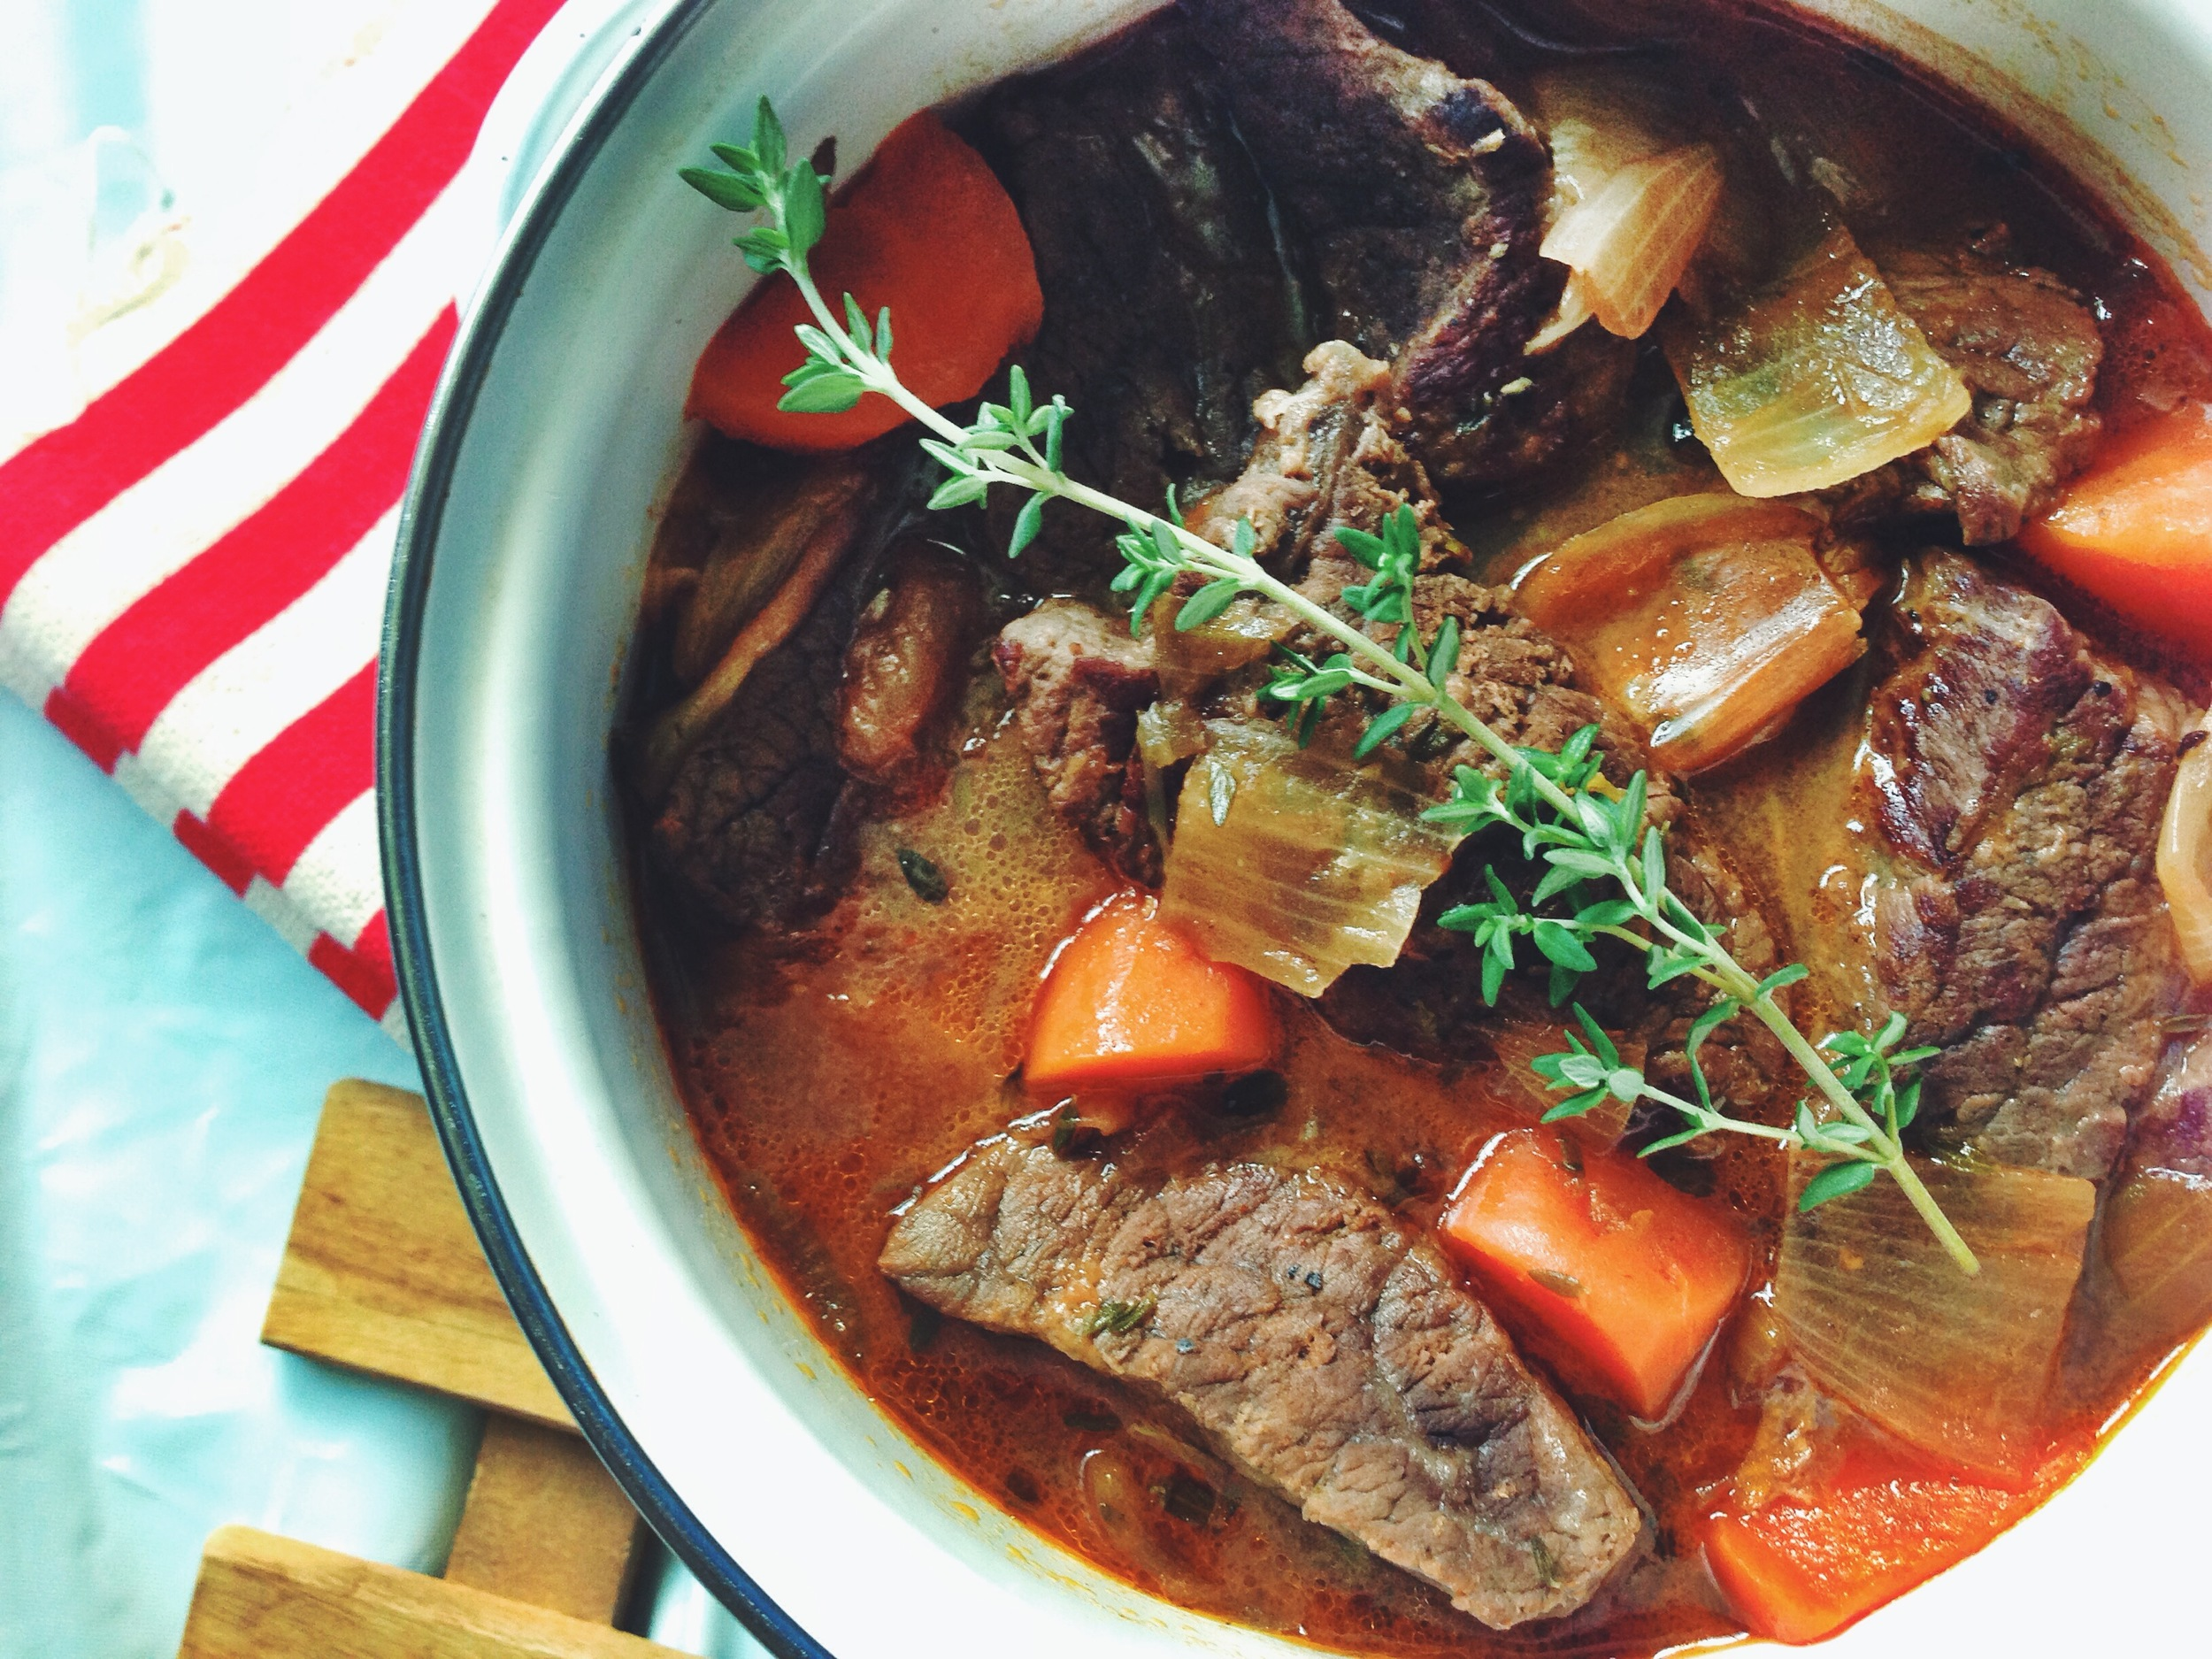 Classic Beef Stew Singapore Food Travel Guide Blog Singaporean Food Travel Blogger Xlbcr